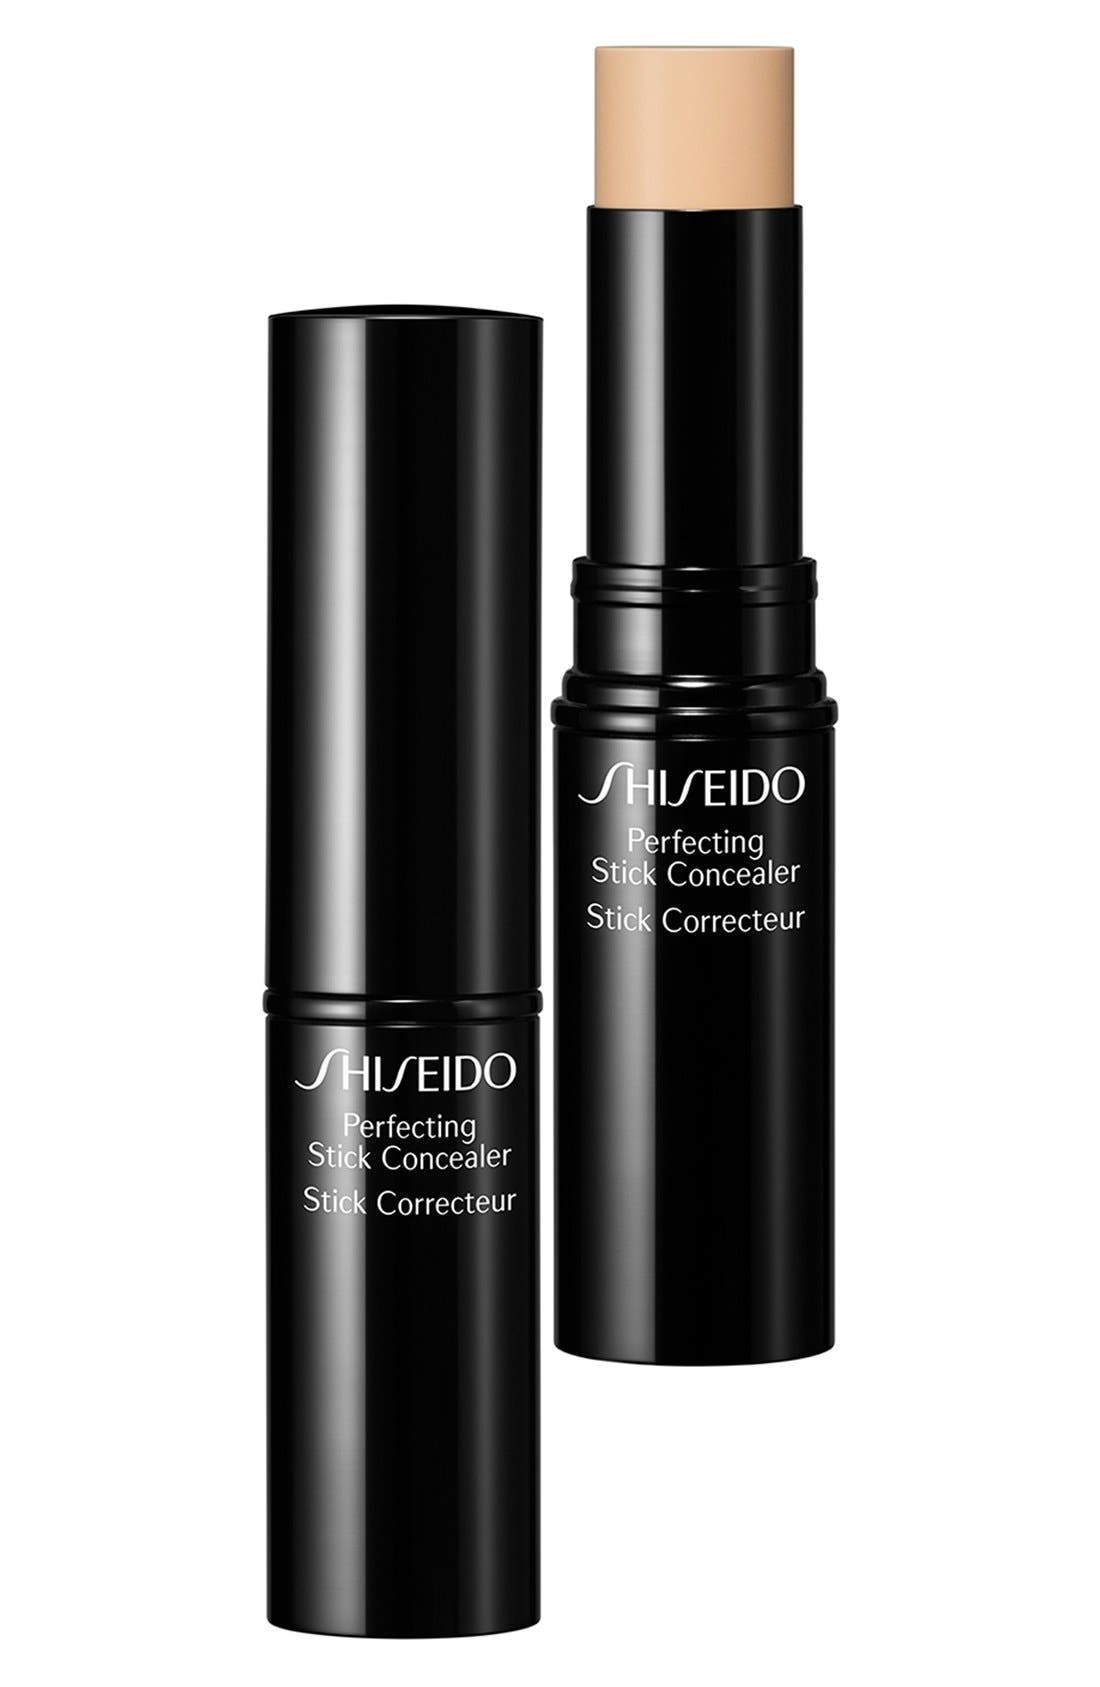 Shiseido 'Perfecting' Stick Concealer